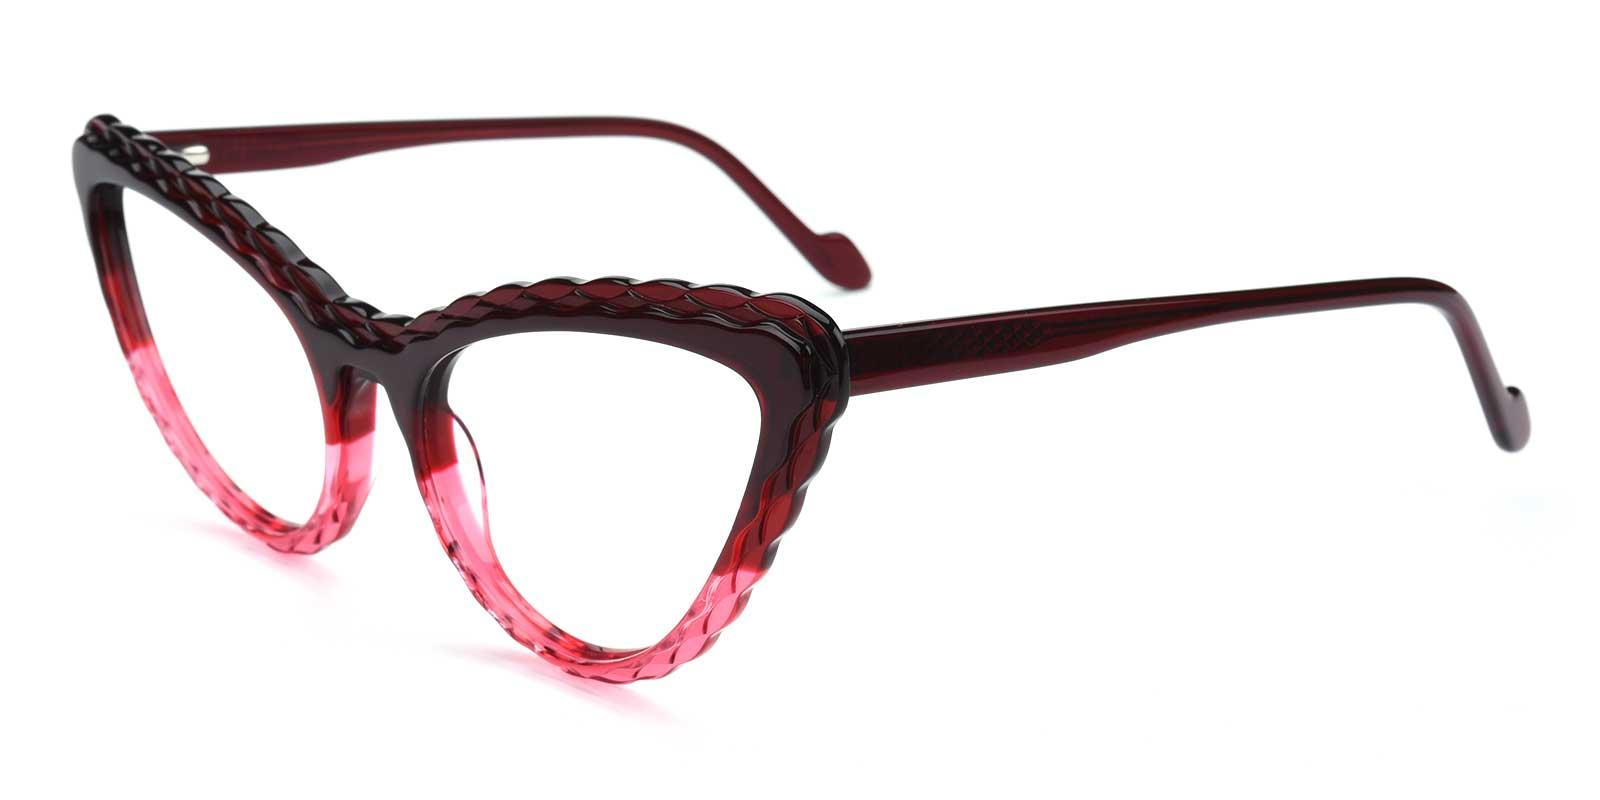 Barry-Purple-Cat-Acetate-Eyeglasses-additional1